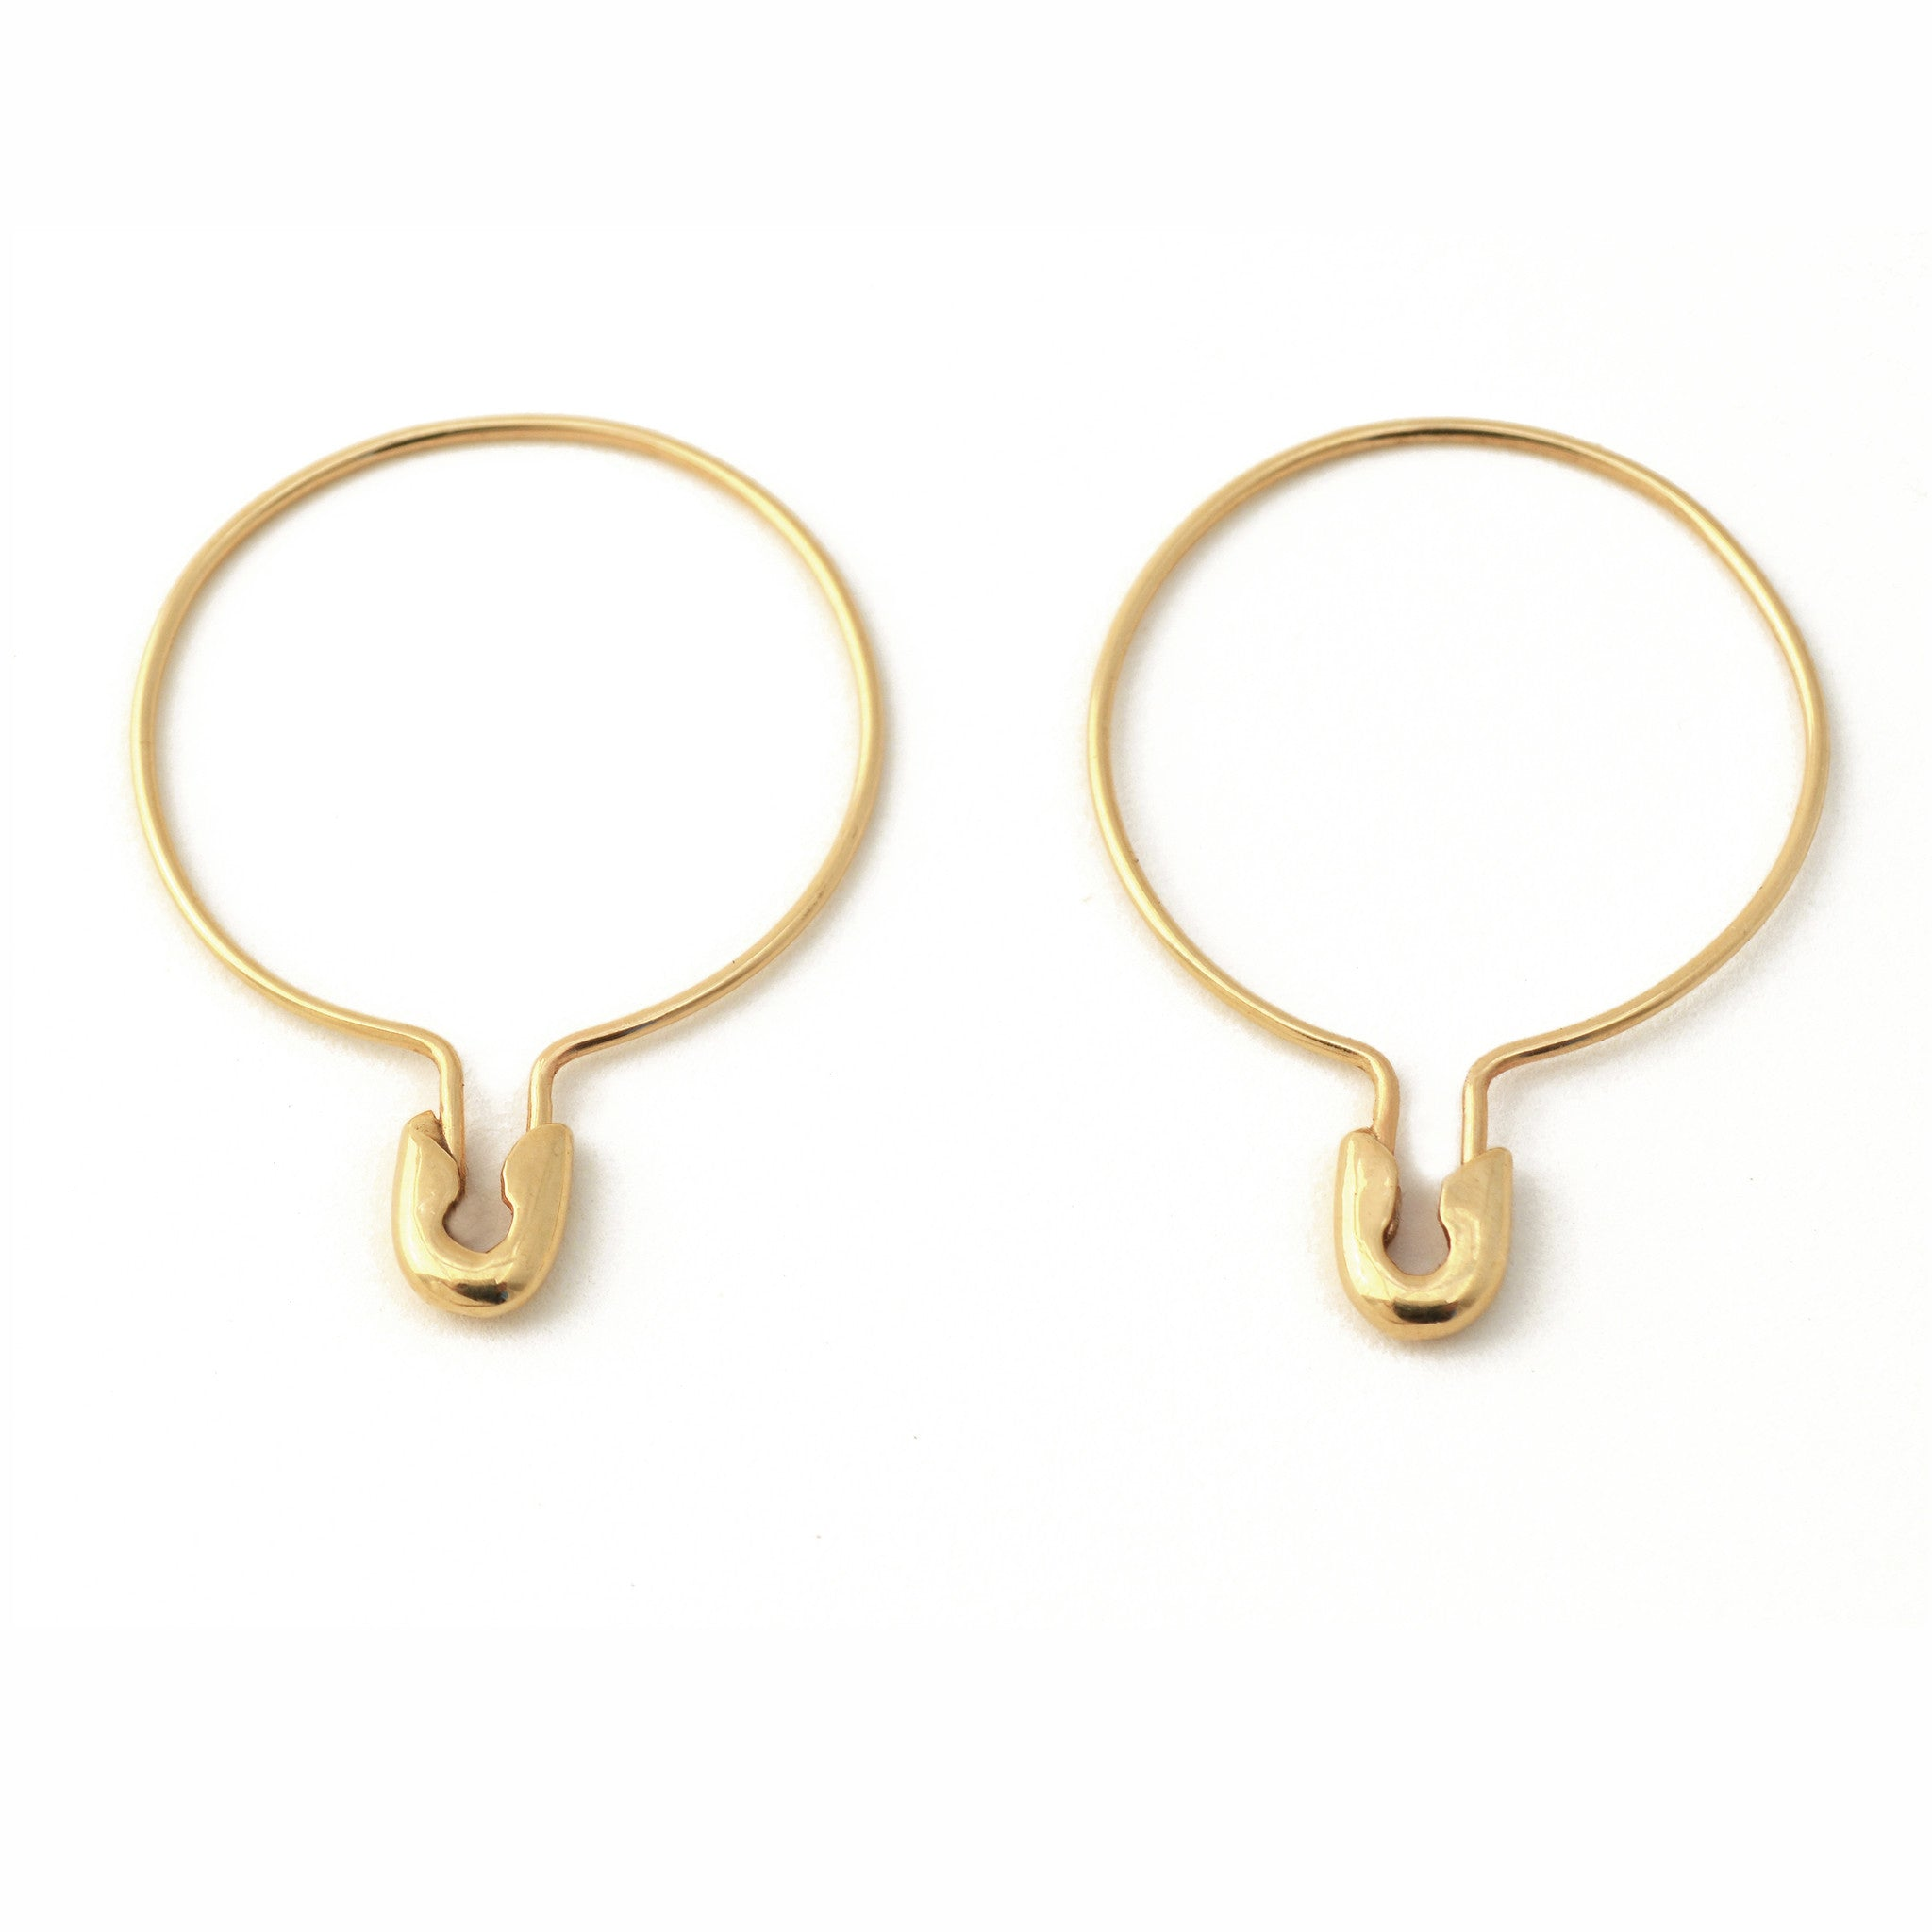 14K GOLD Medium Safety Pin Hoop Earrings Pair